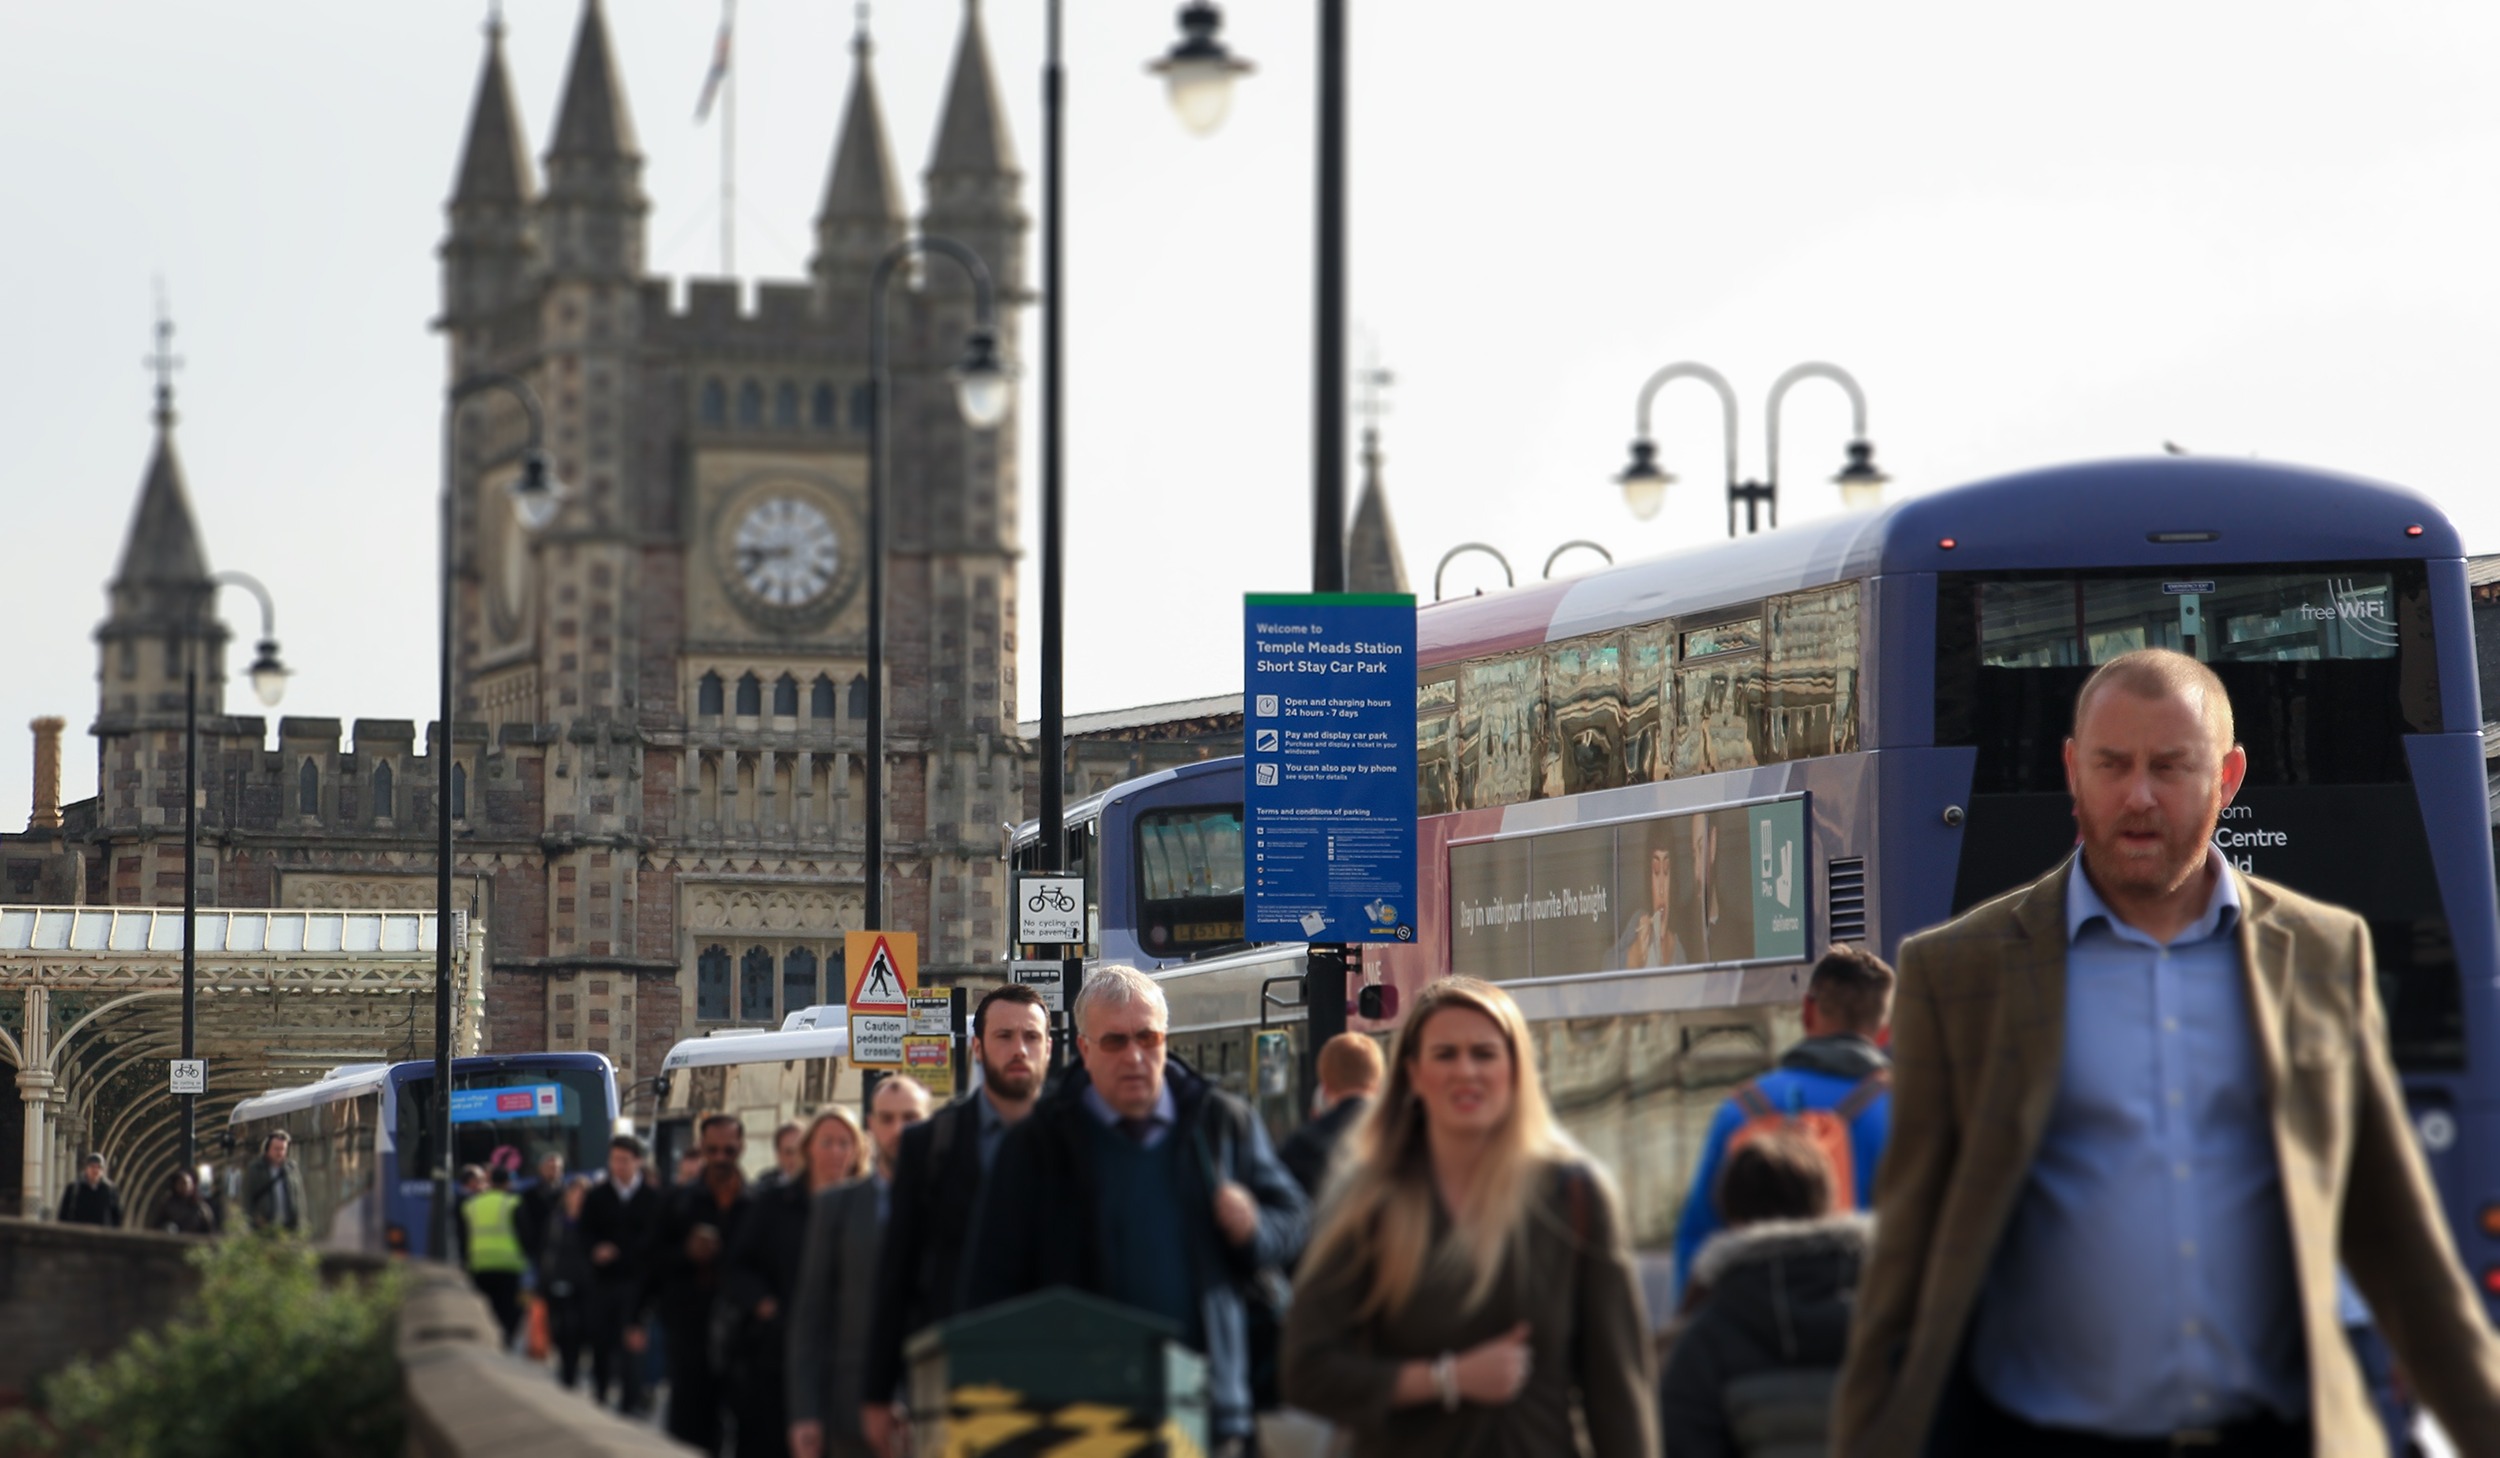 Morning commuters at Bristol's Temple Meads station